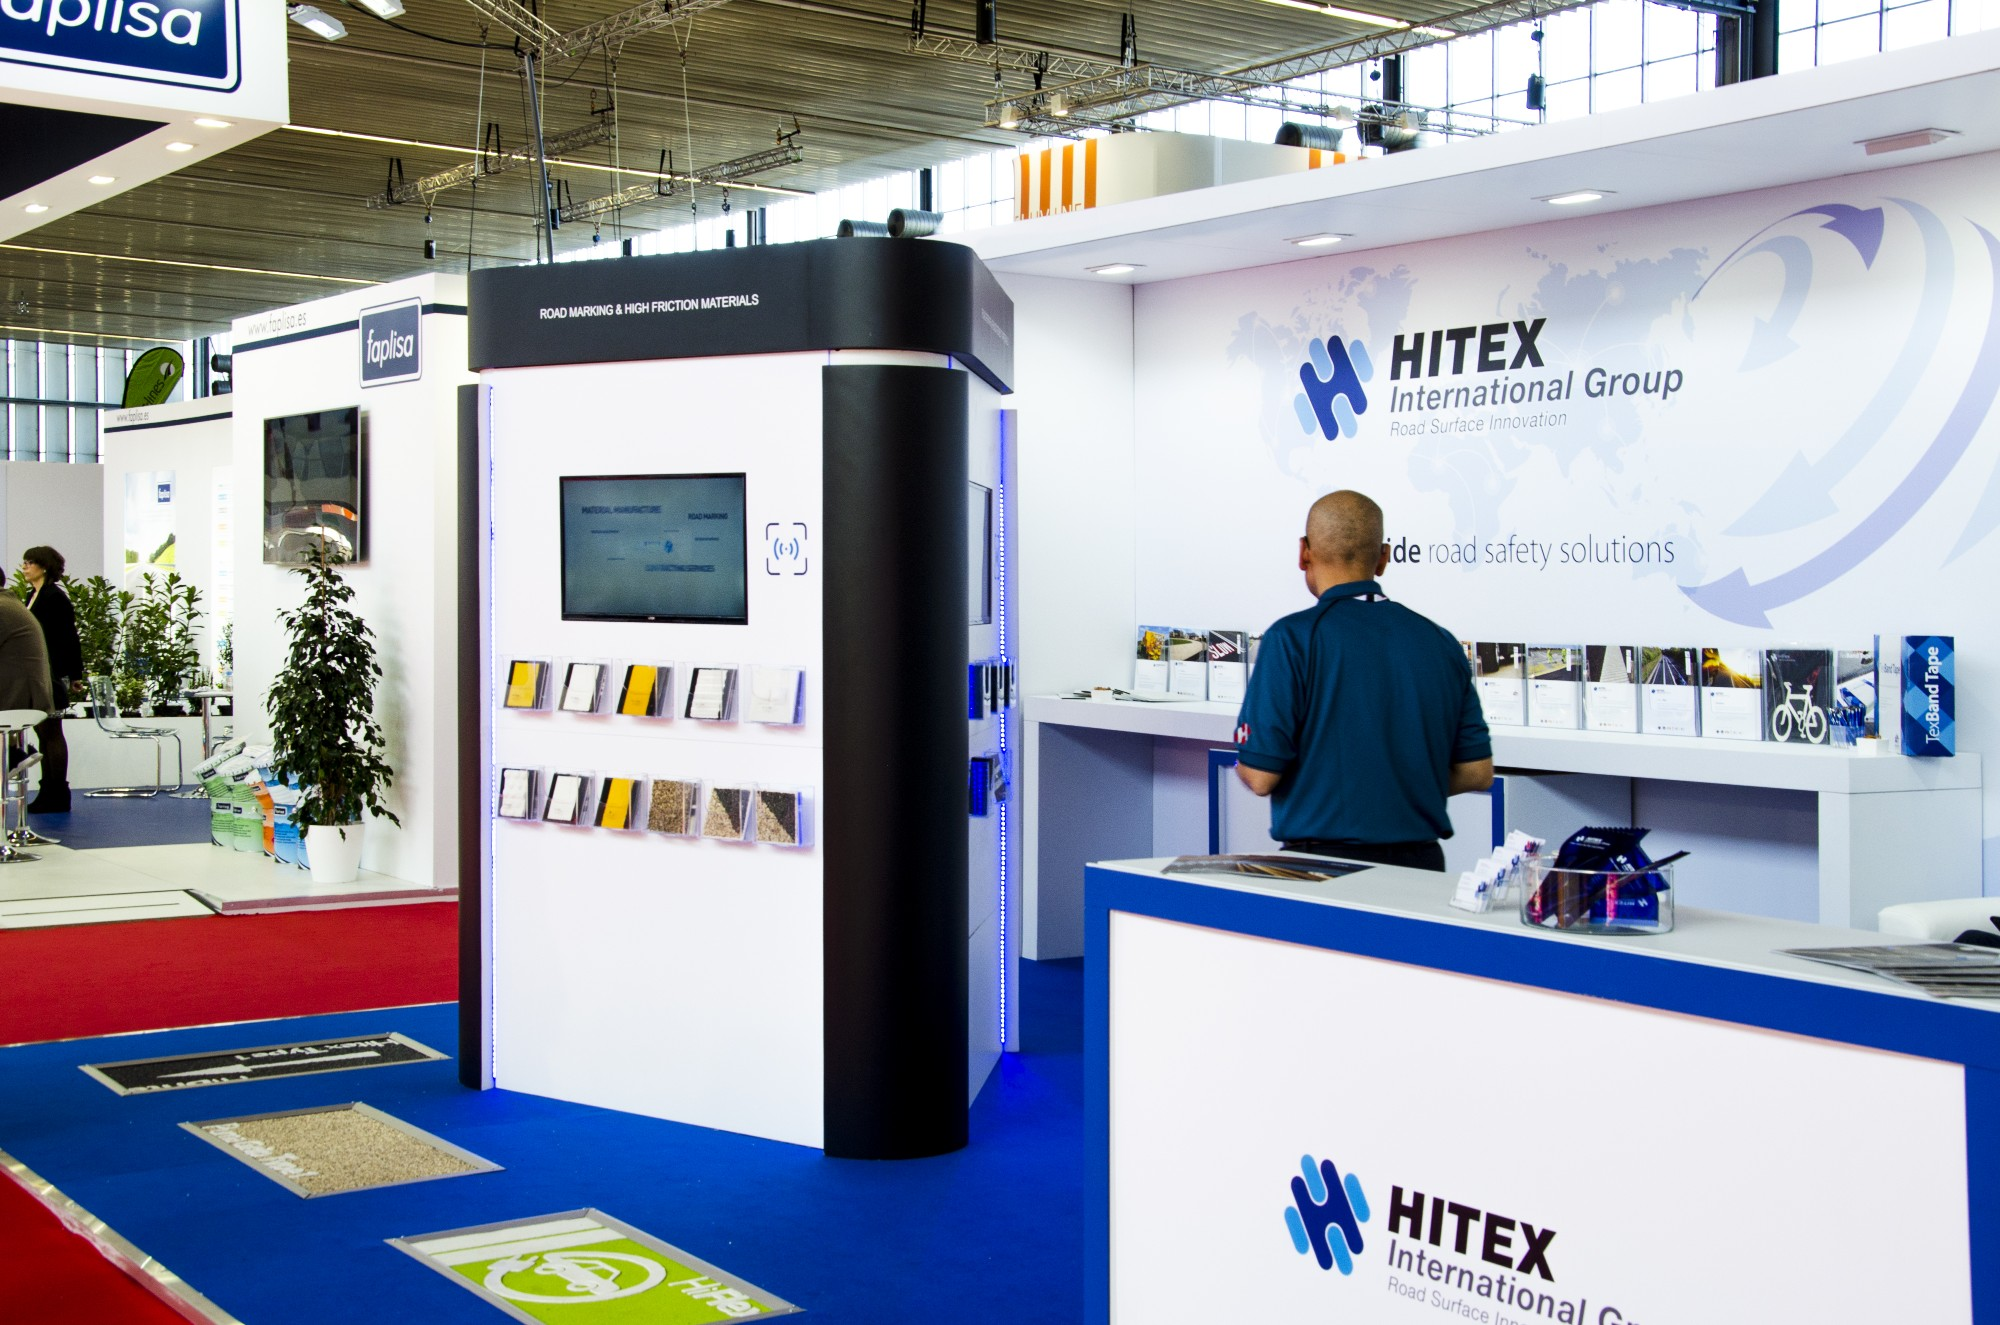 Hitex at Intertraffic 2018 26